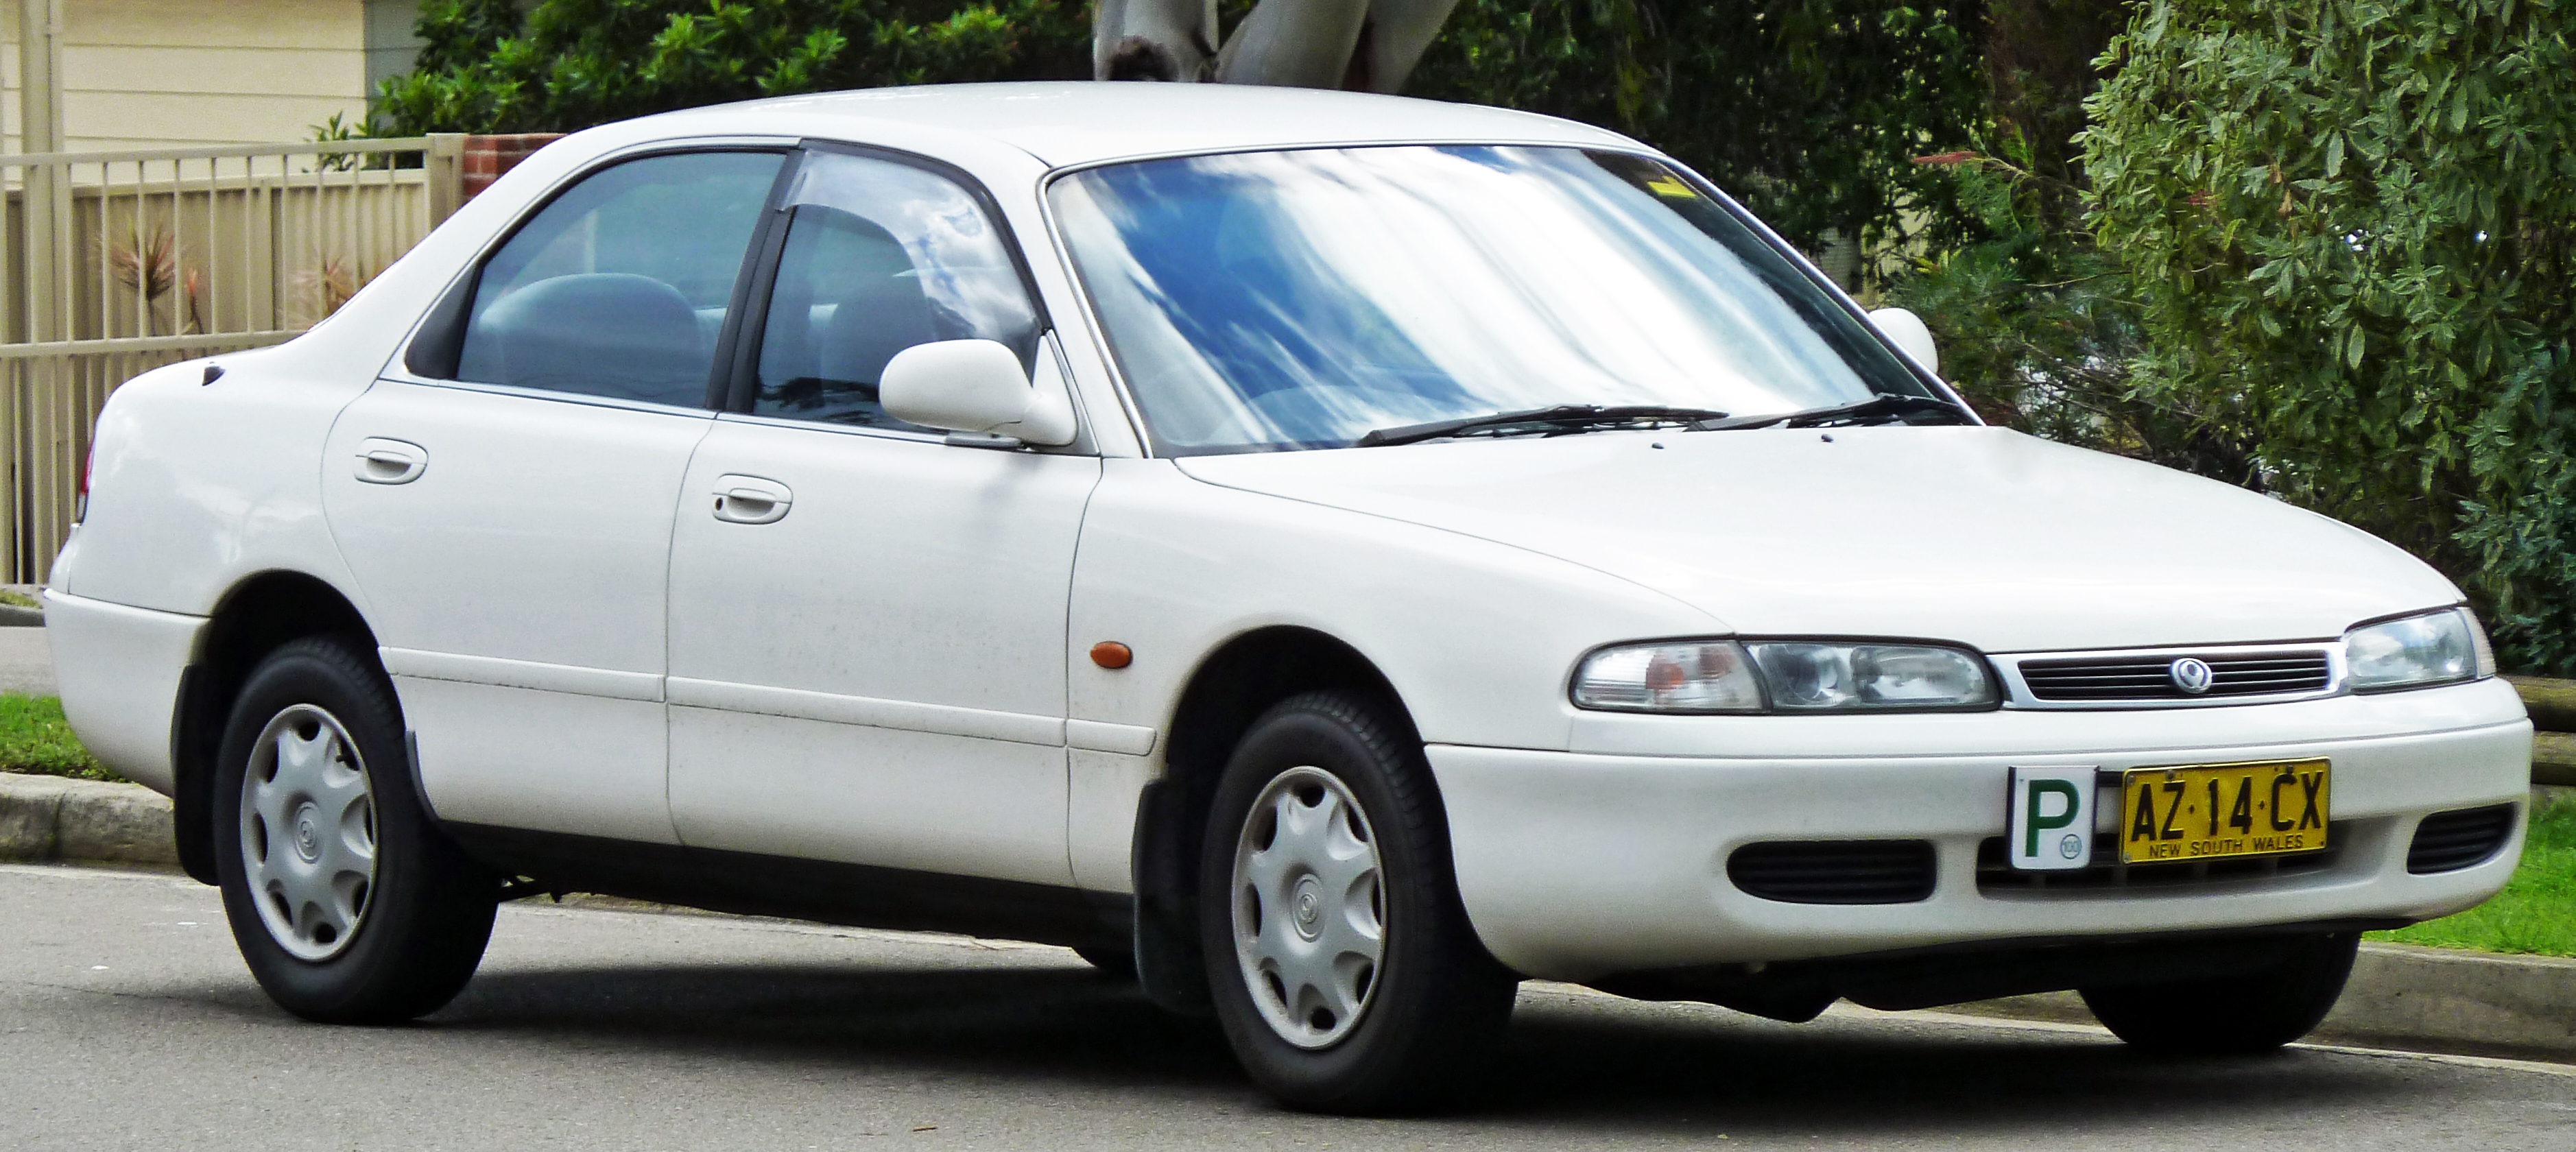 File:1995 Mazda 626 (GE Series 2) Eclipse sedan 01.jpg - Wikimedia